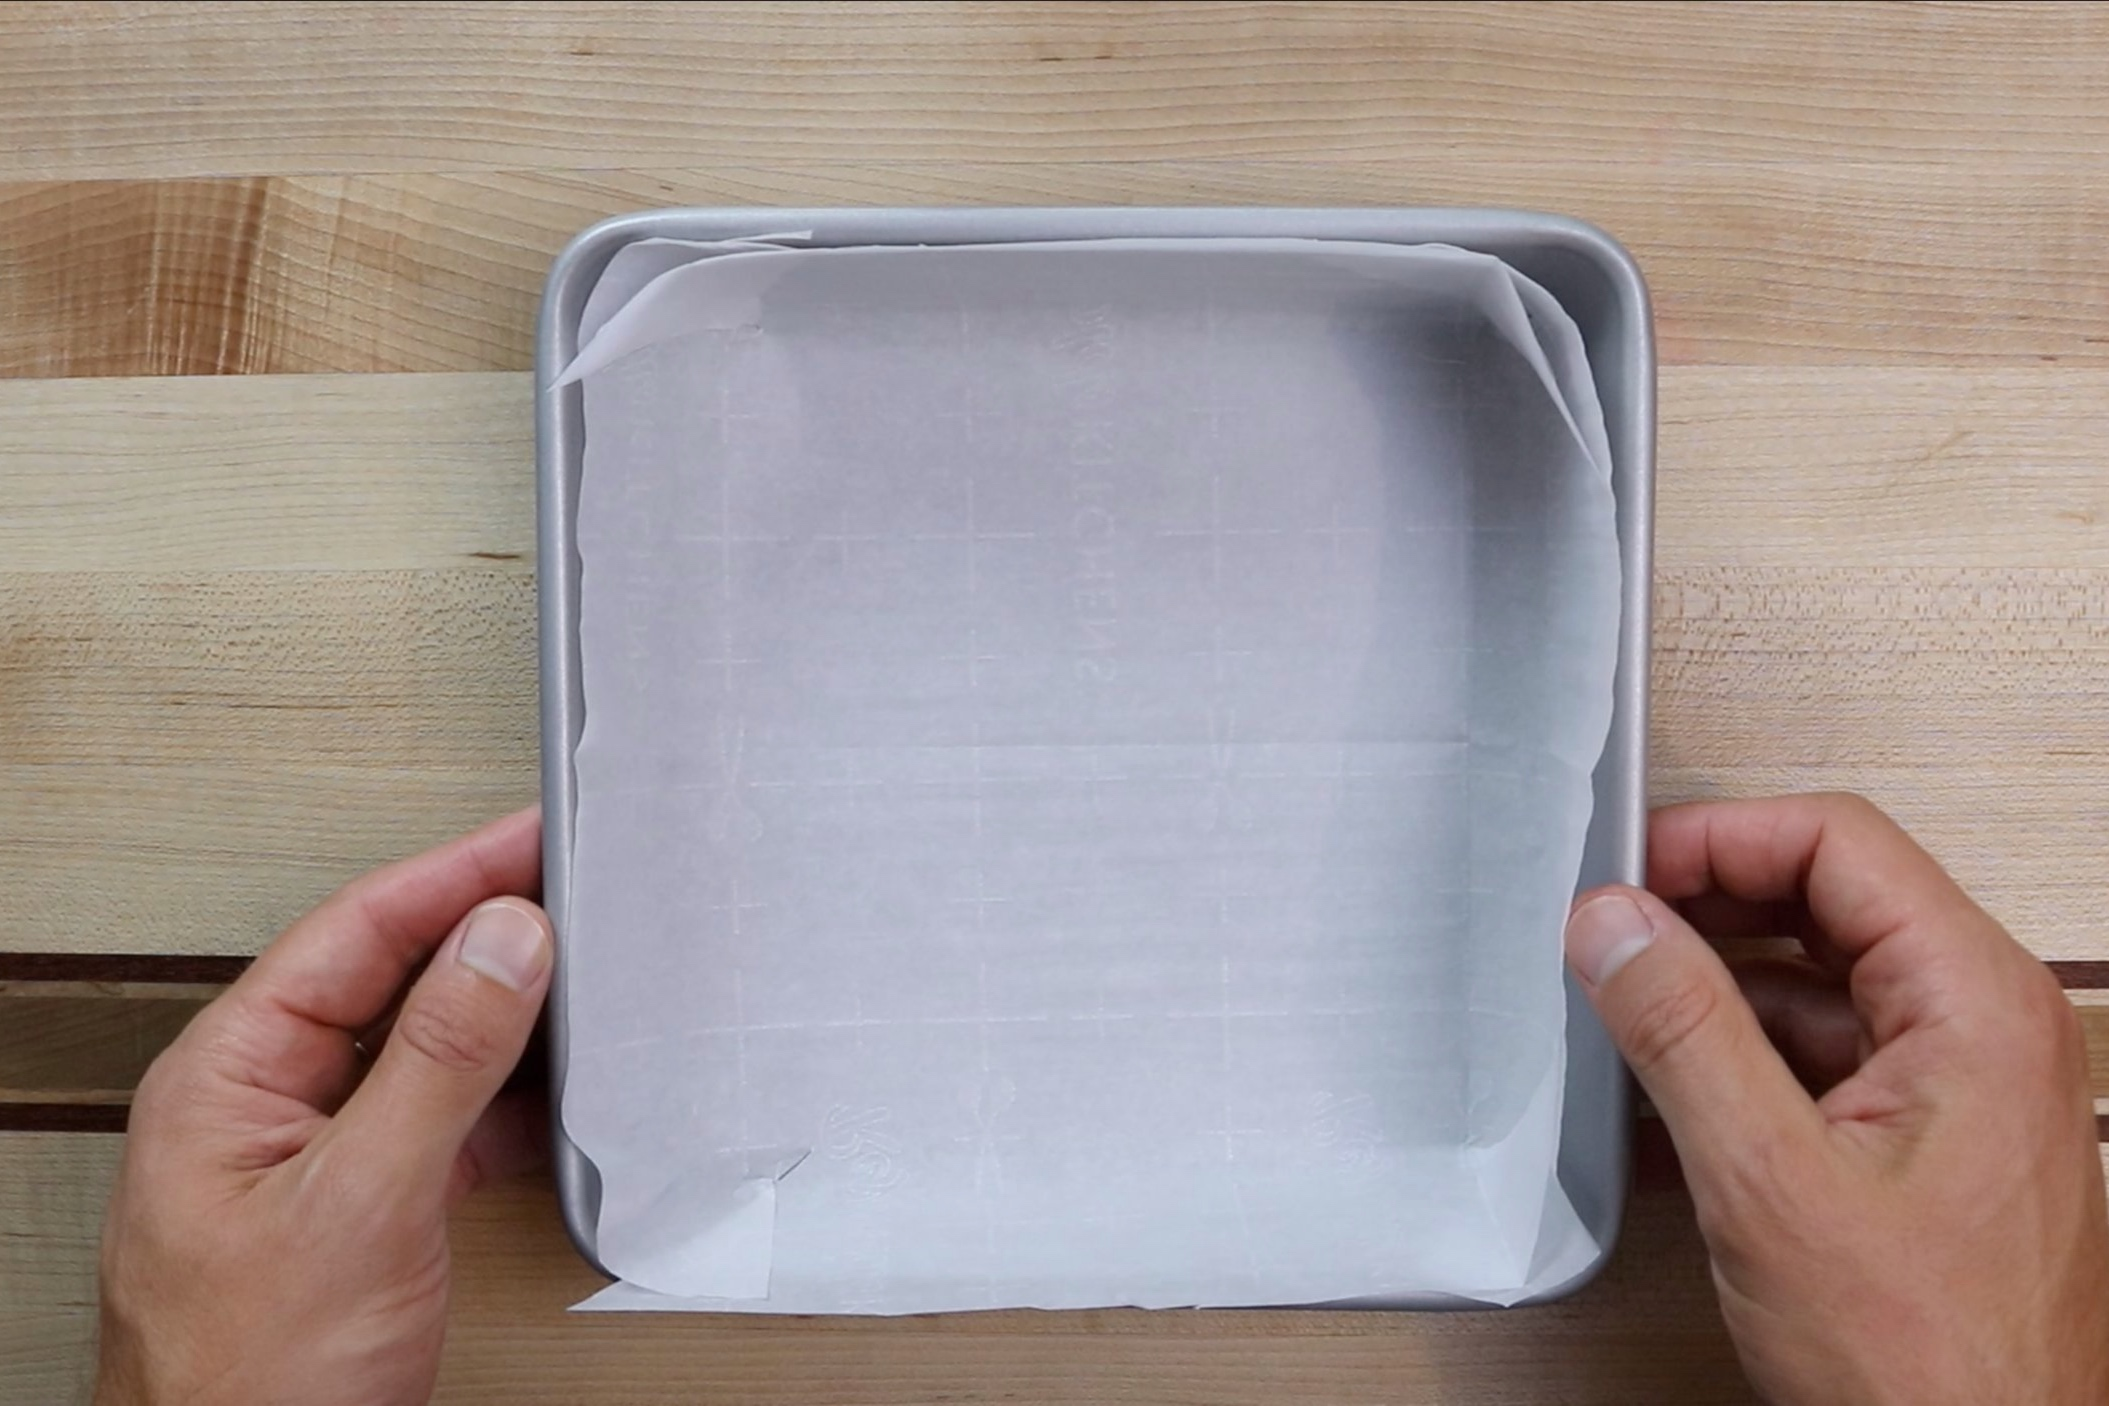 1. Preheat oven to 350 degrees. Line a 9x9 baking pan with parchment paper and grease with baking spray. -